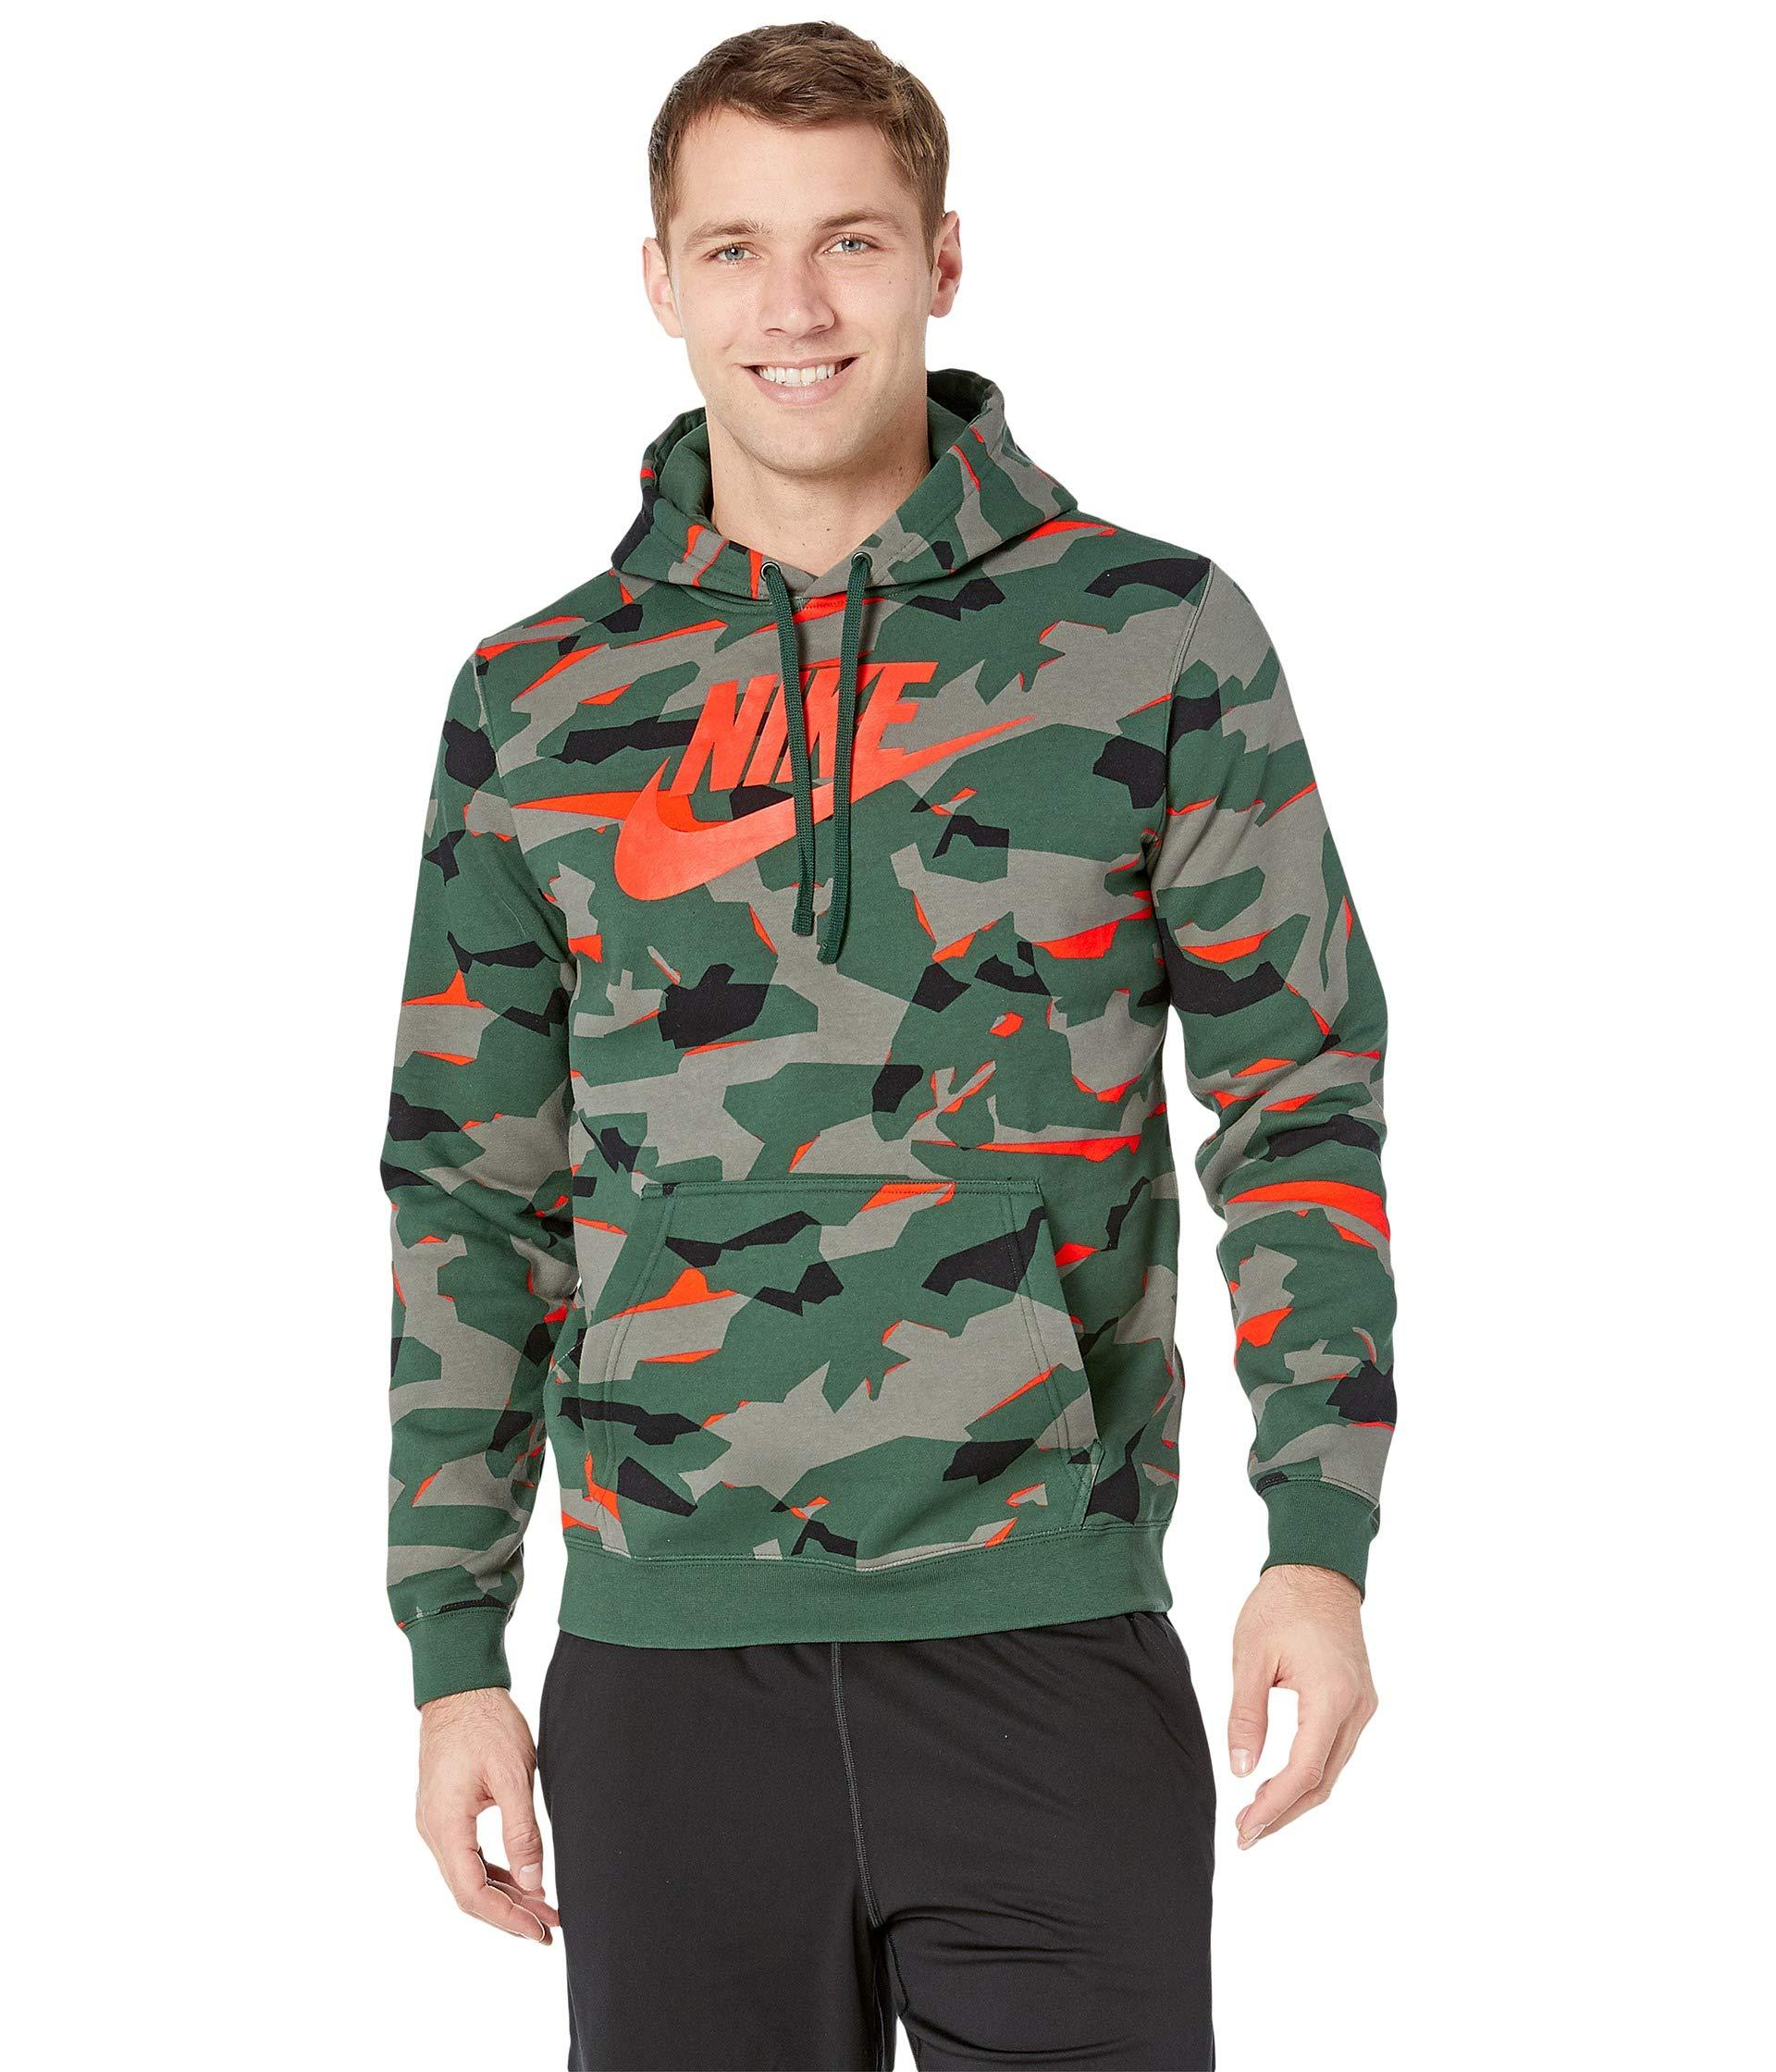 a0f81791acdf Lyst - Nike Nsw Club Camo Pullover Hoodie in Green for Men